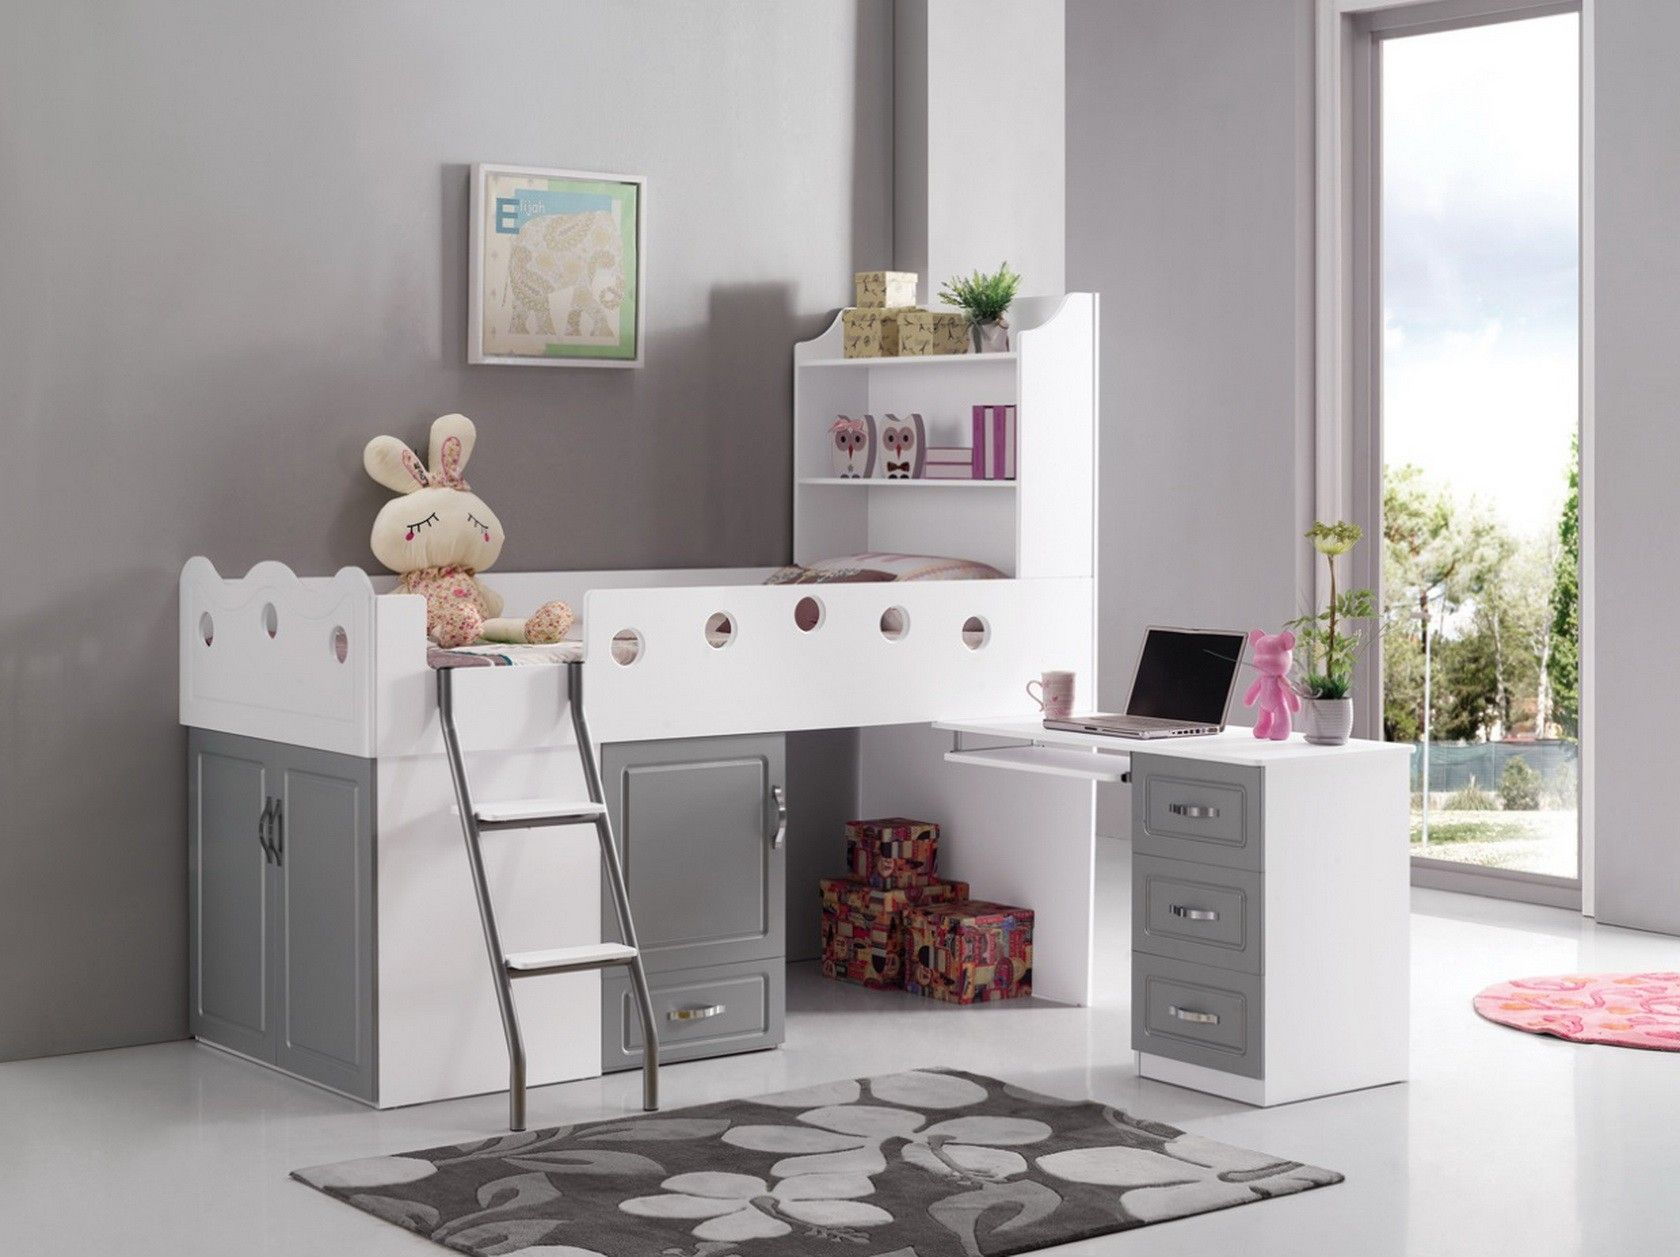 lit combin pour enfant blanc et gris linda nadeau. Black Bedroom Furniture Sets. Home Design Ideas